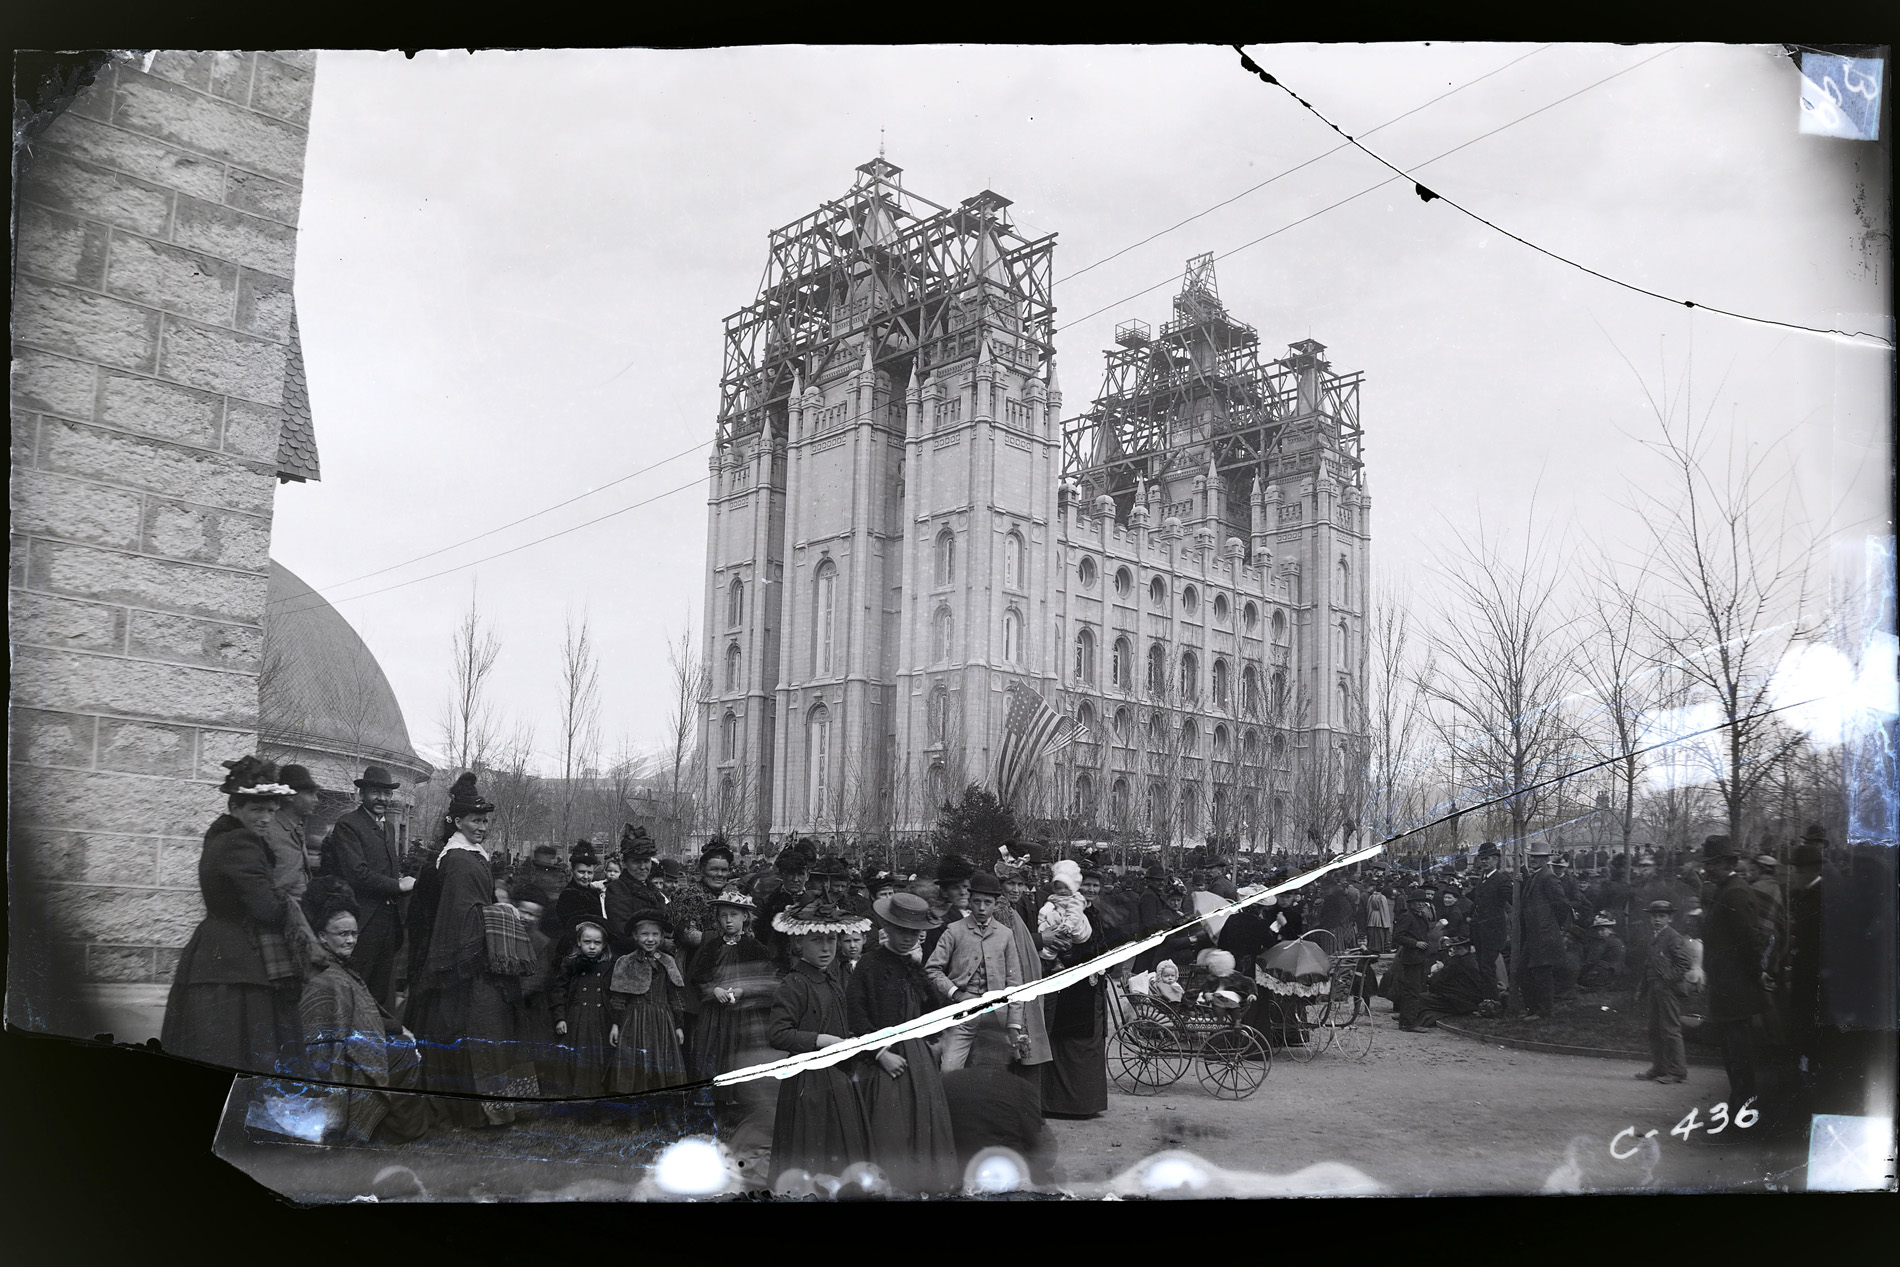 Cracked and taped glass negative of the capstone ceremony of the Salt Lake Temple, 6 April 1892, before restoration of the image.